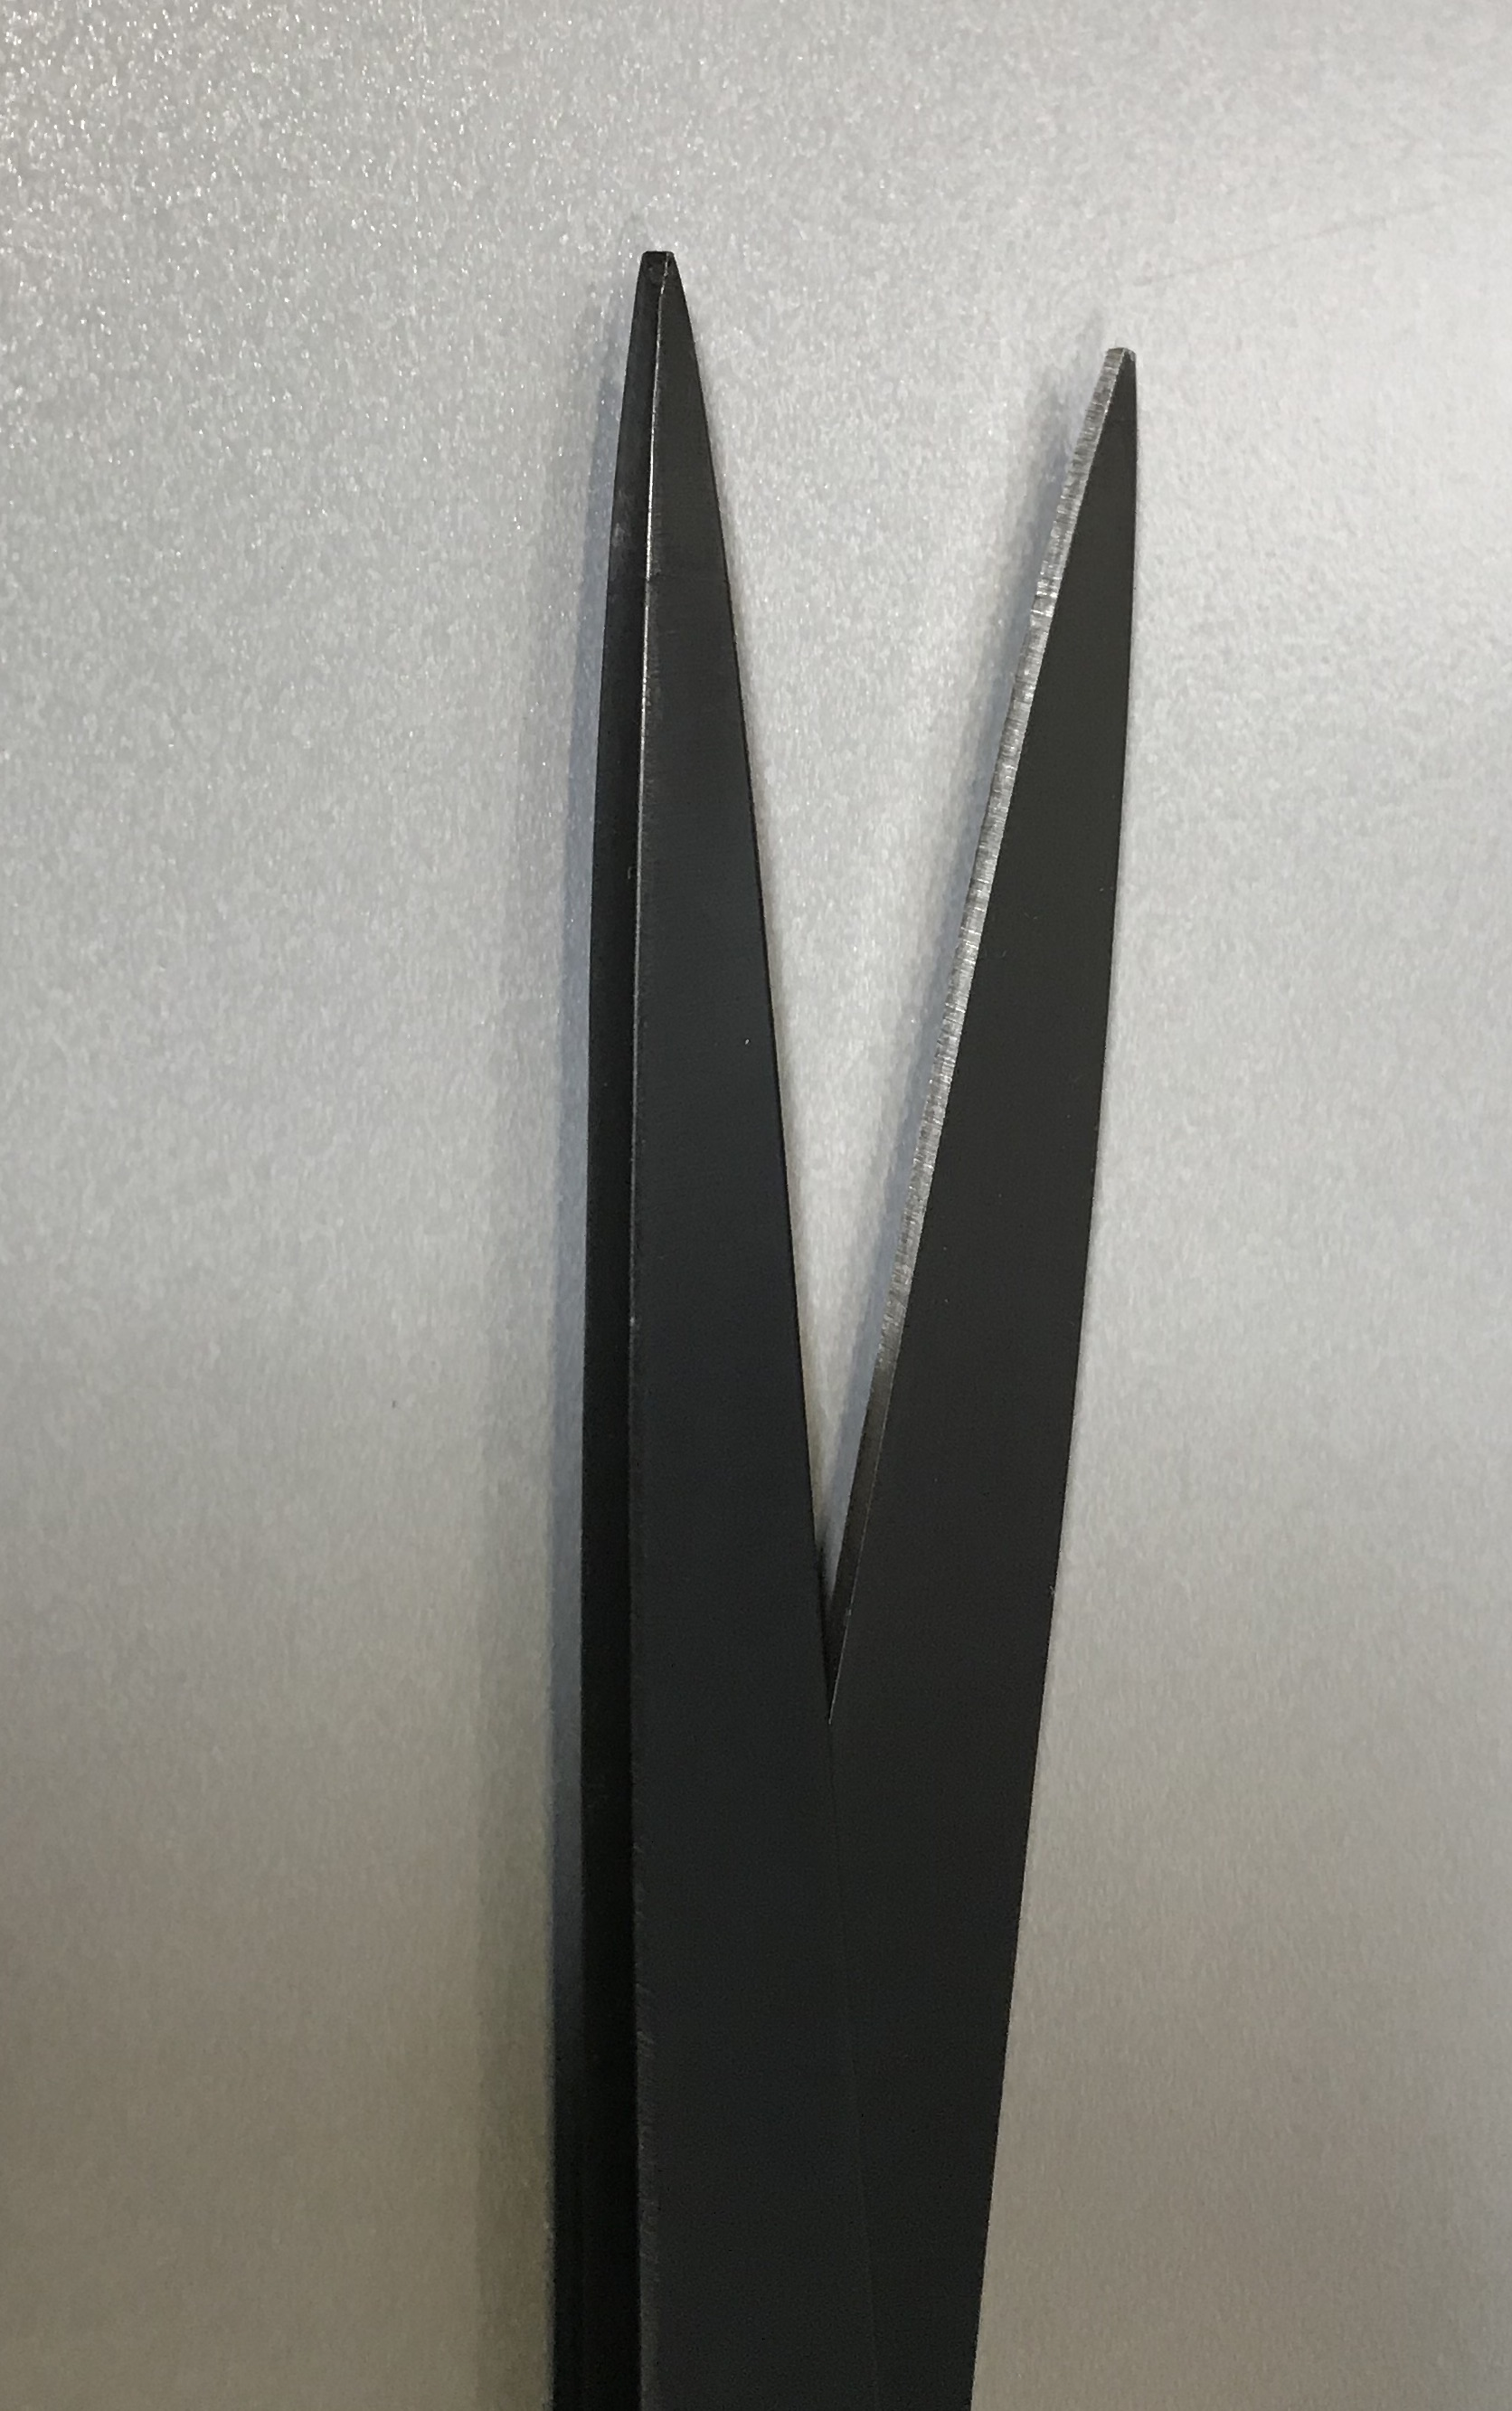 Straight Trimming Scissors - Black Oxide - 10